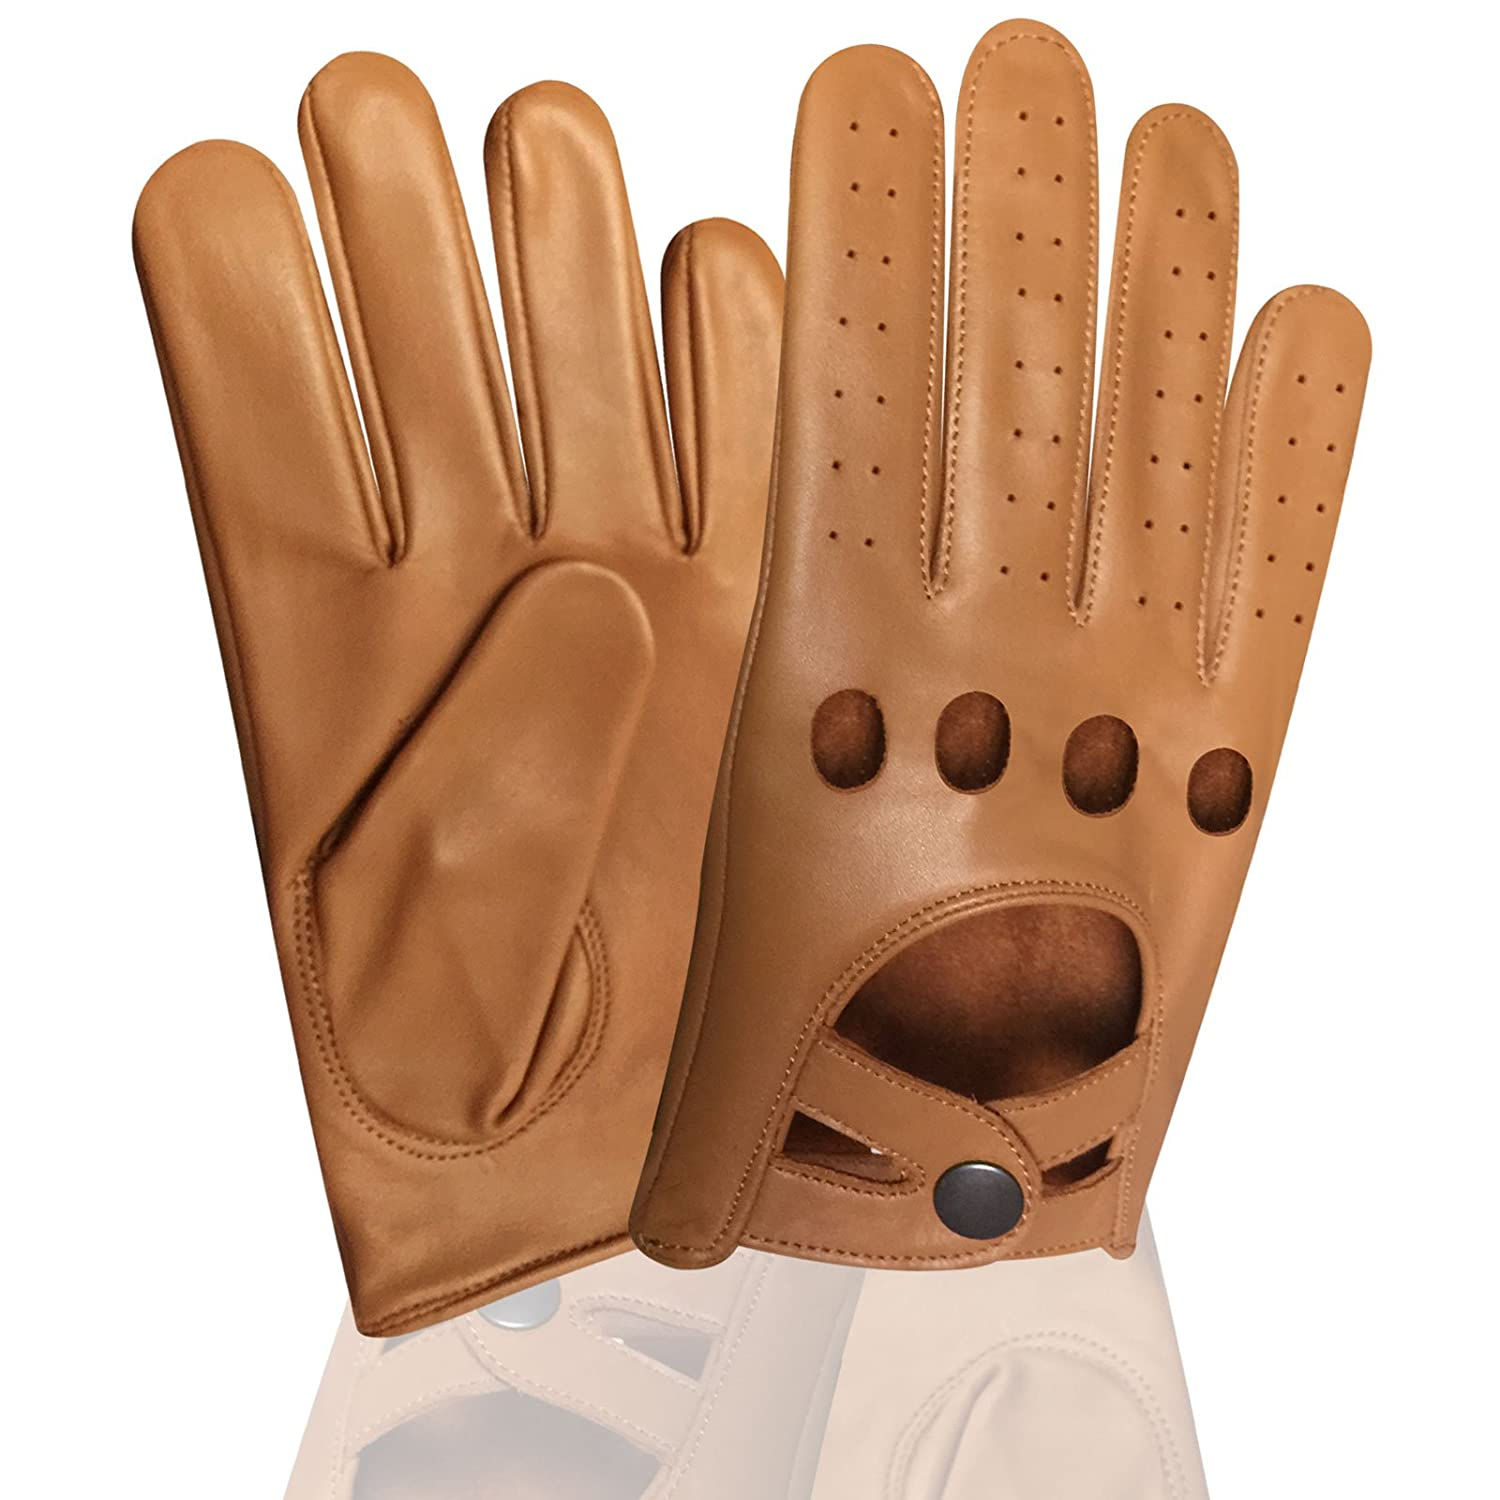 REAL SOFT LEATHER MEN'S UNLINED KNUCKLE HOLES DRIVING TAN GLOVES D-511 Daiko